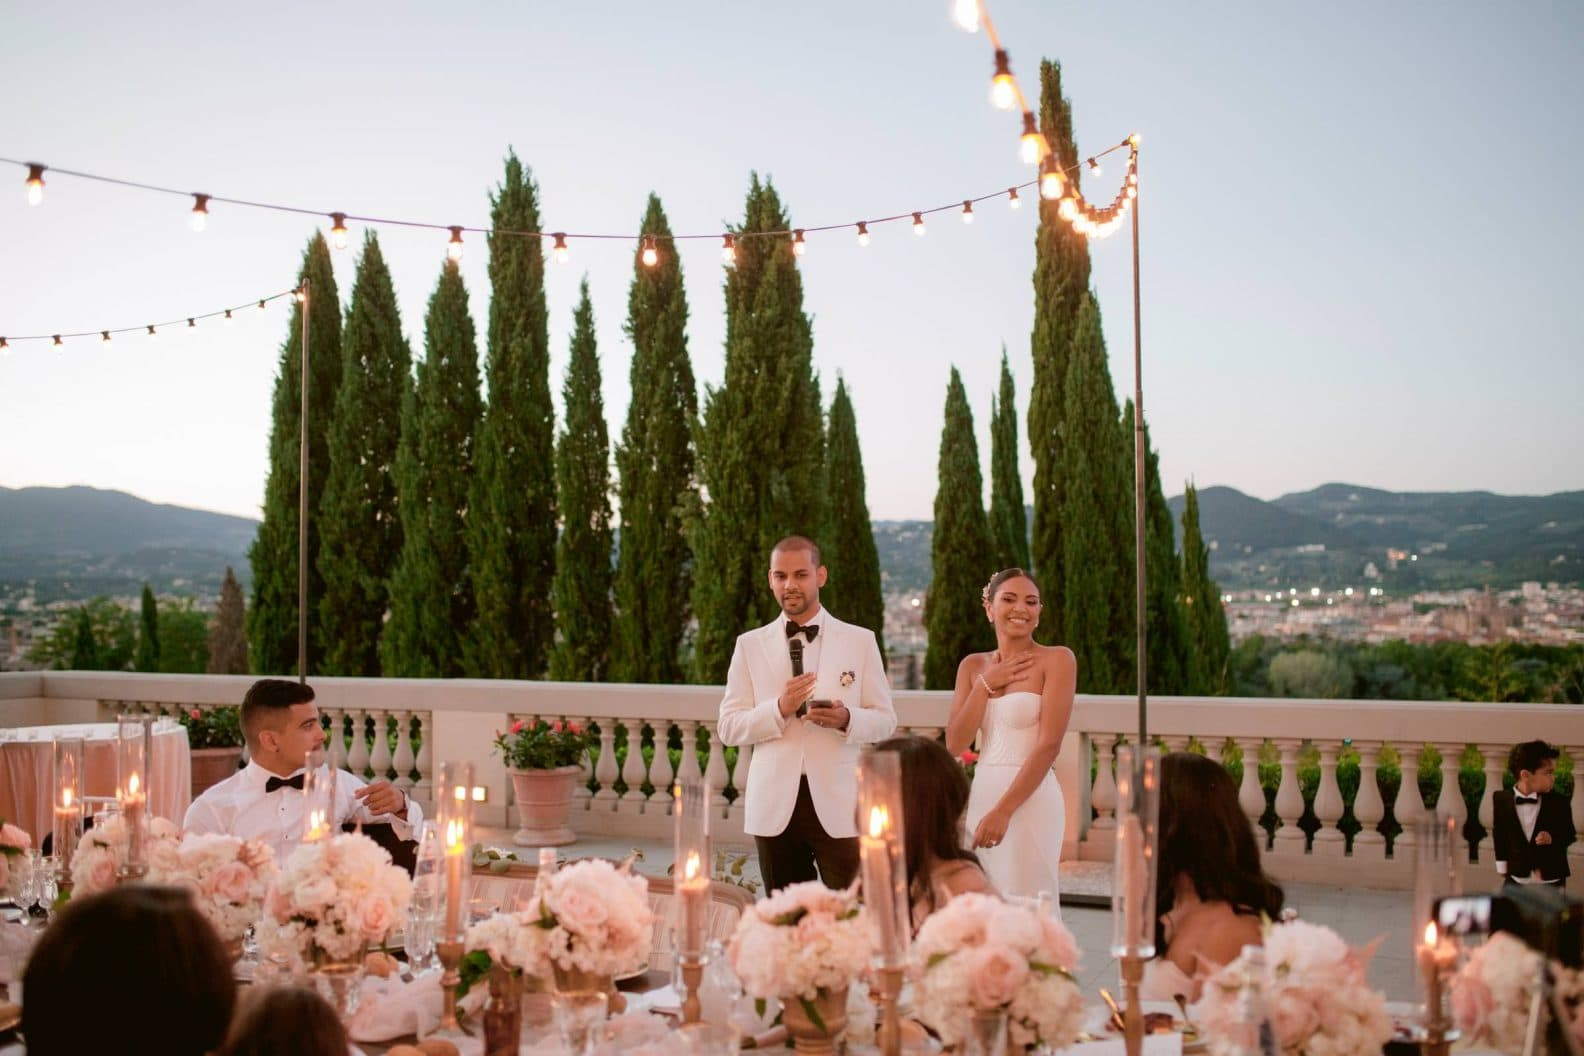 groom's speech during the reception